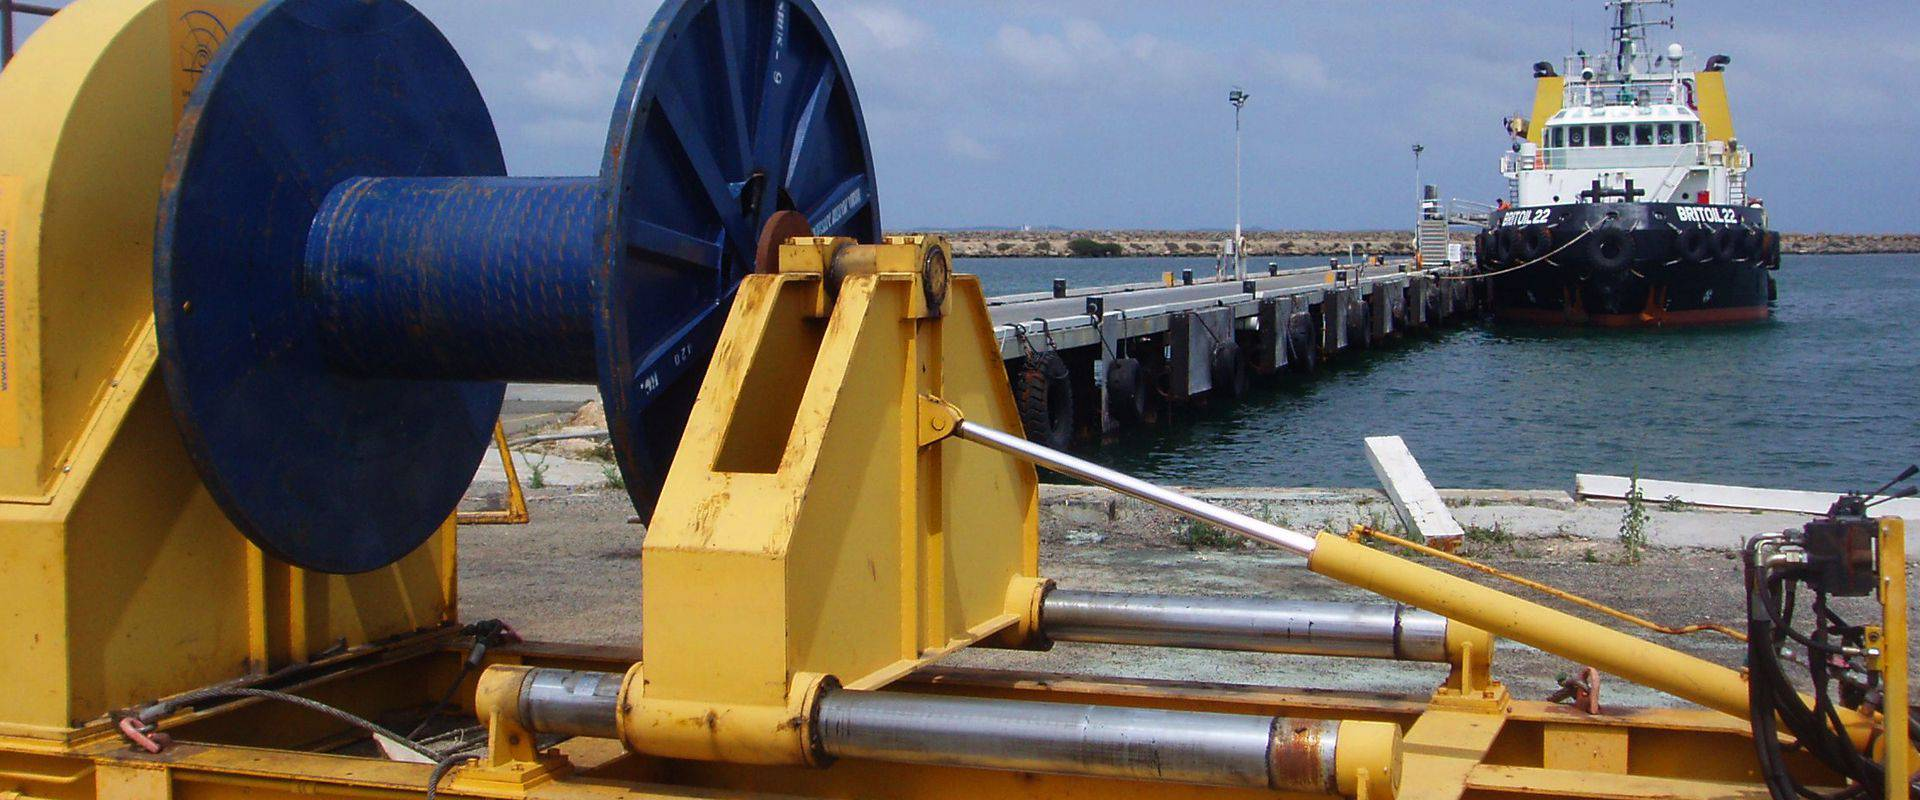 Heavy Duty Spoolers - Industrial and Marine Winch